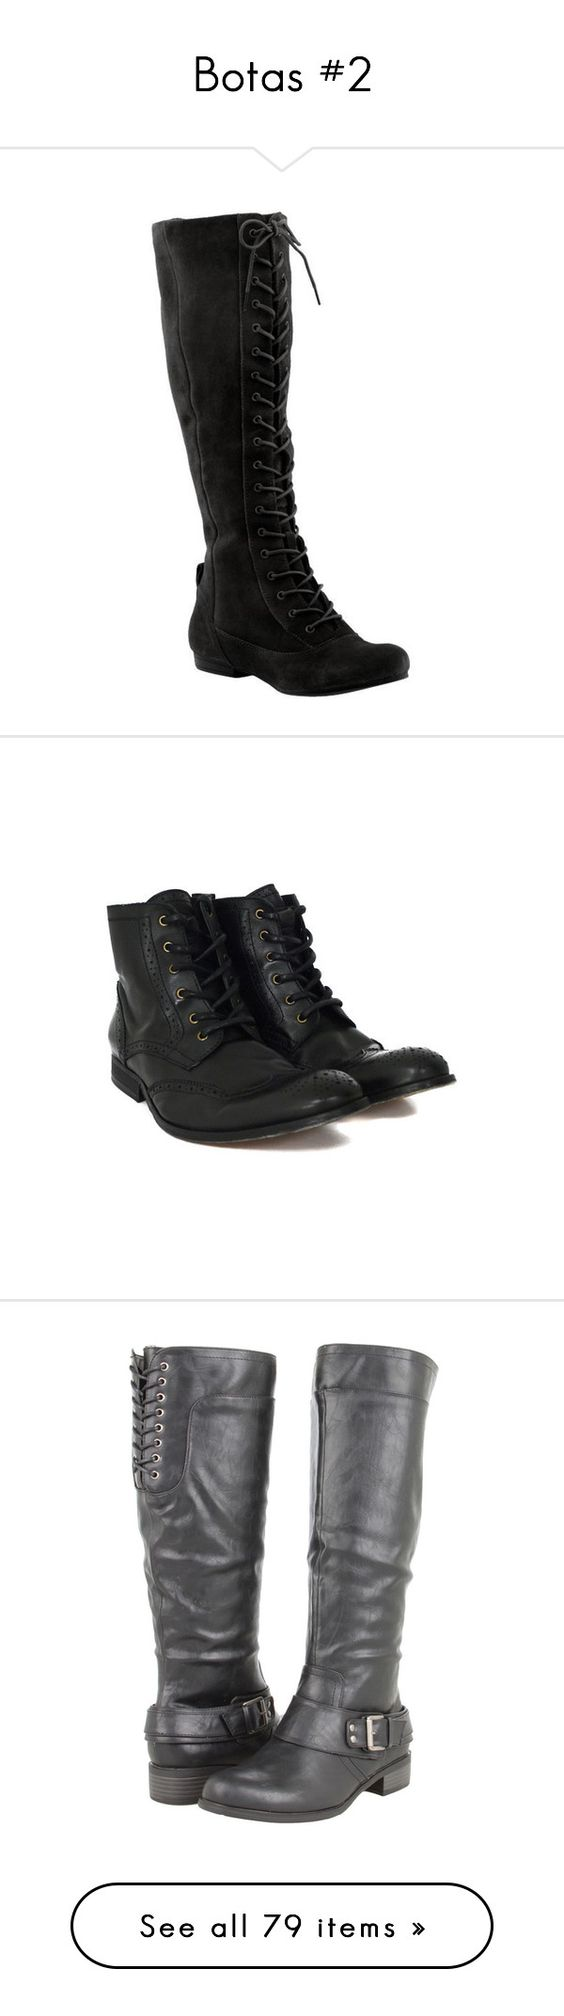 """Botas #2"" by franca-helo ❤ liked on Polyvore"